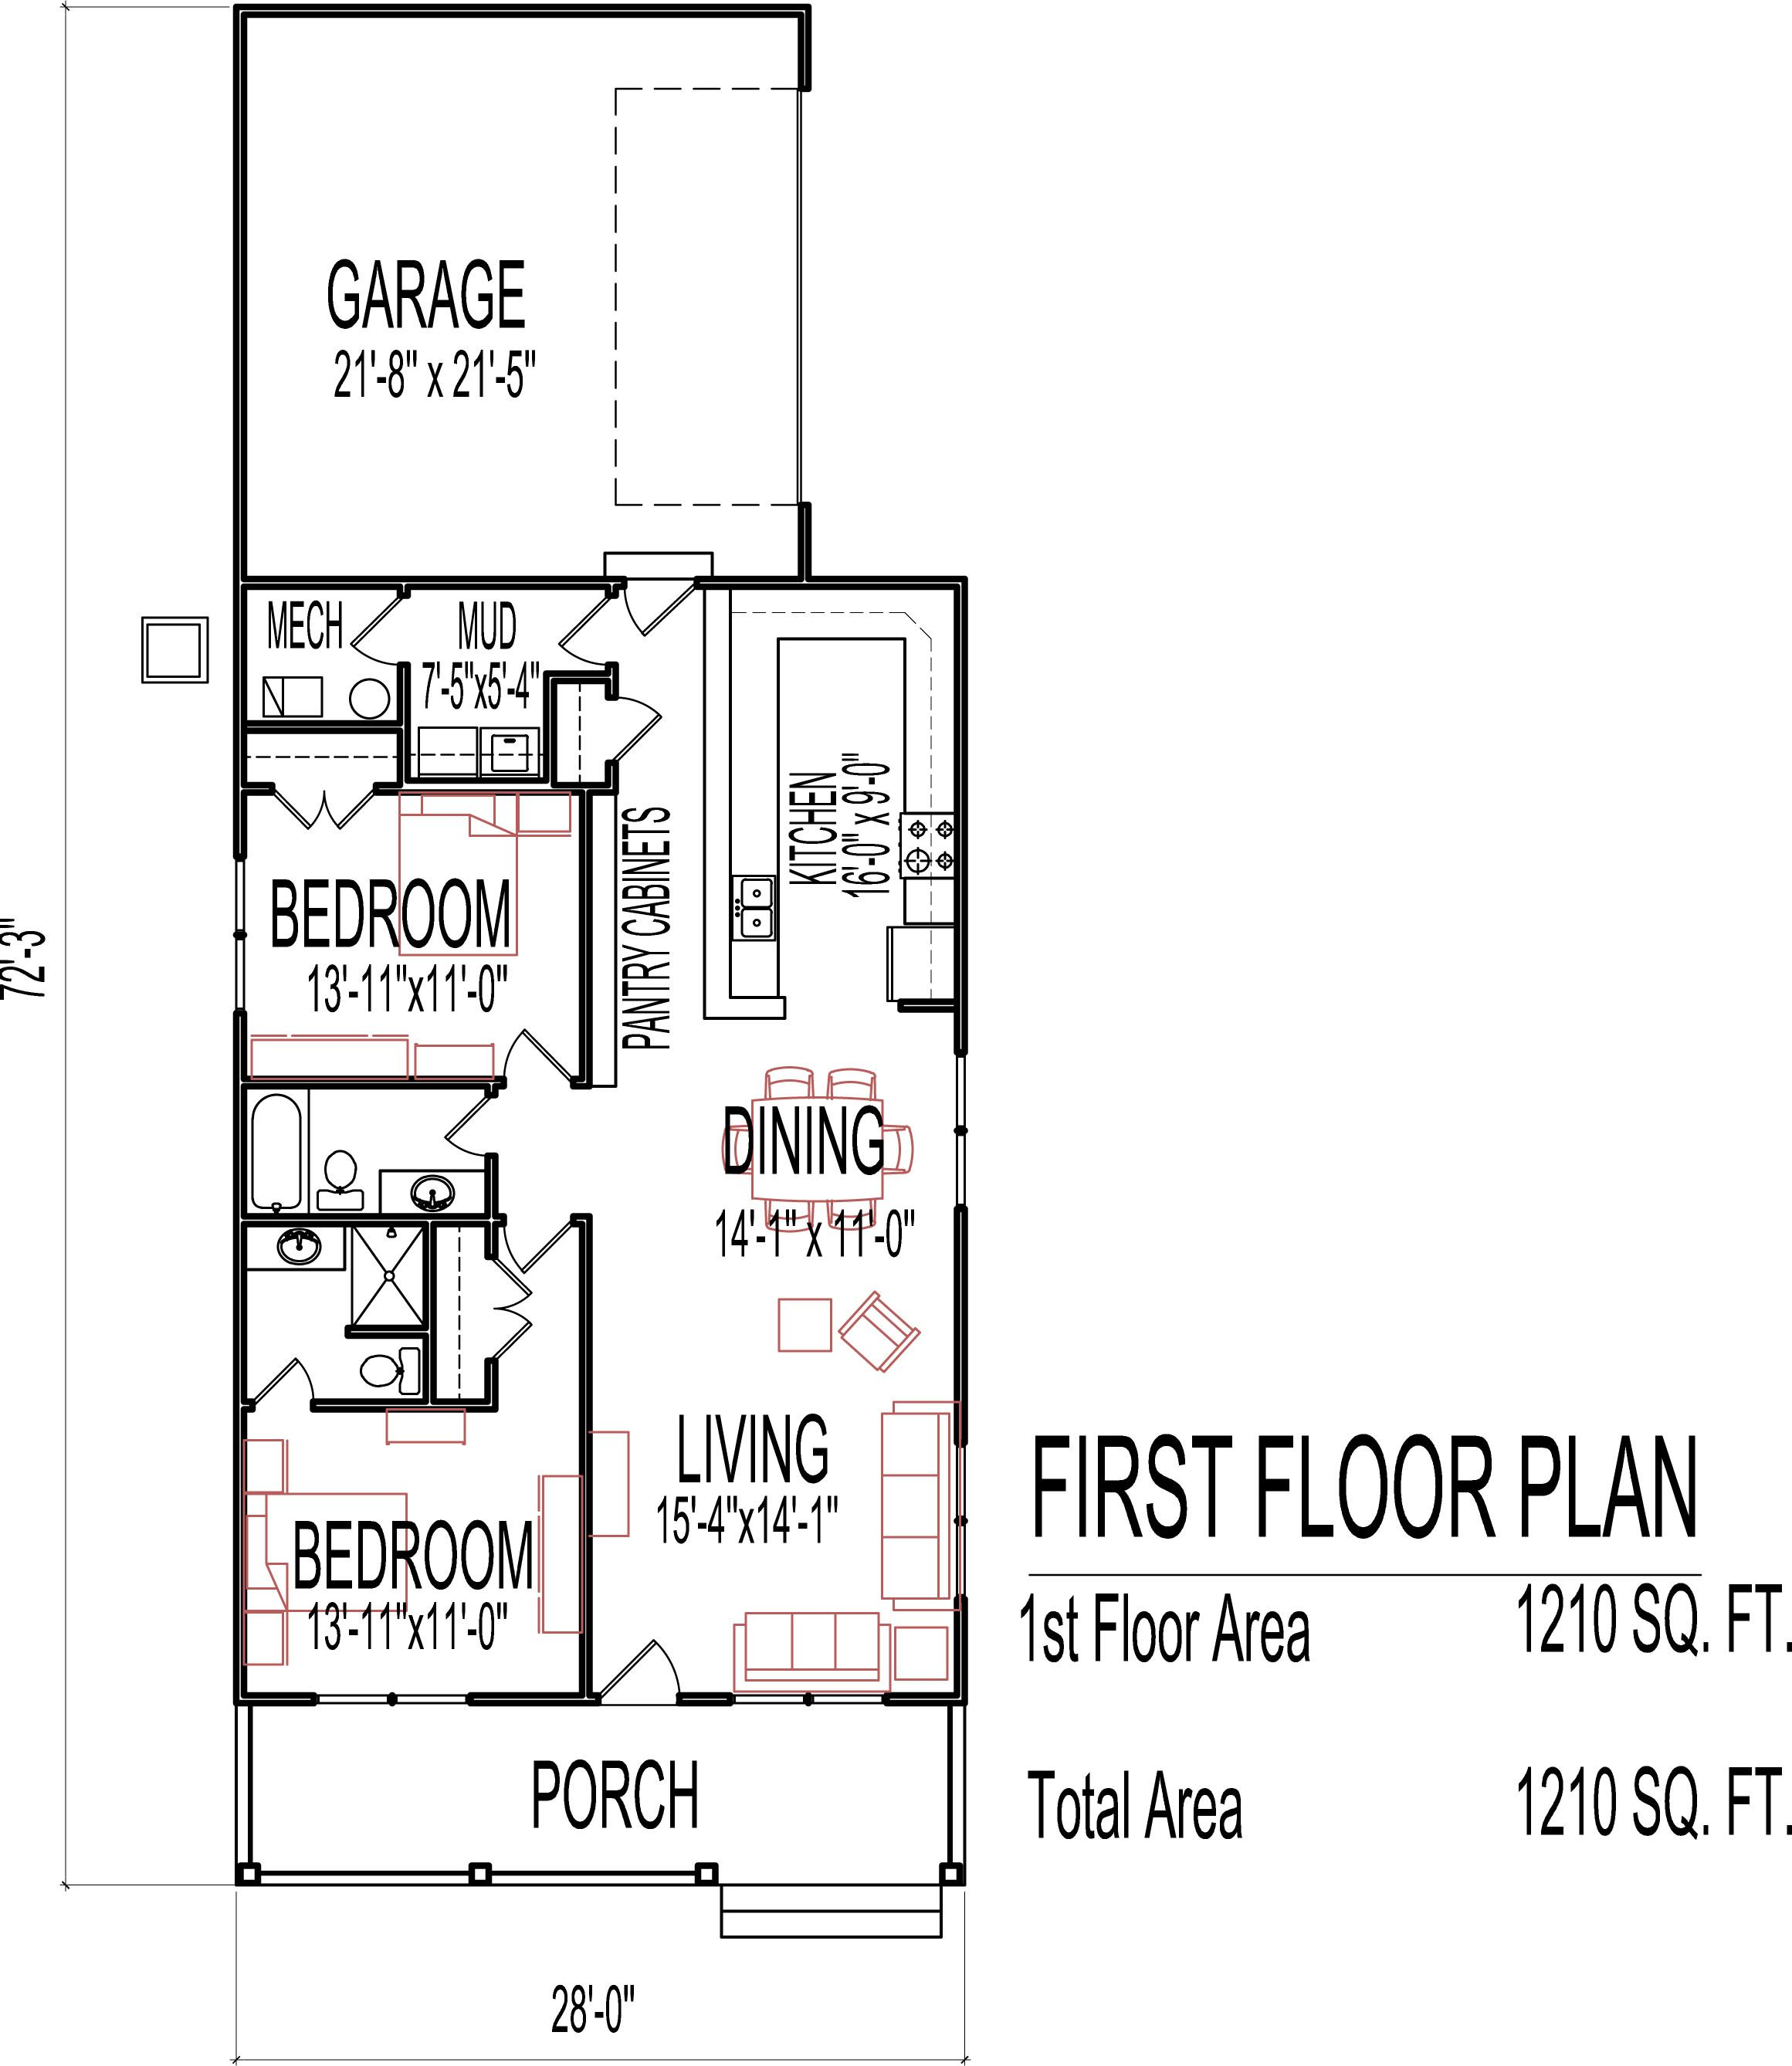 Small Low Cost Economical 2 Bedroom 2 Bath 1200 Sq Ft Single Story House Floor Plans Blueprint Dra Cheap House Plans House Plans One Story Bungalow House Plans